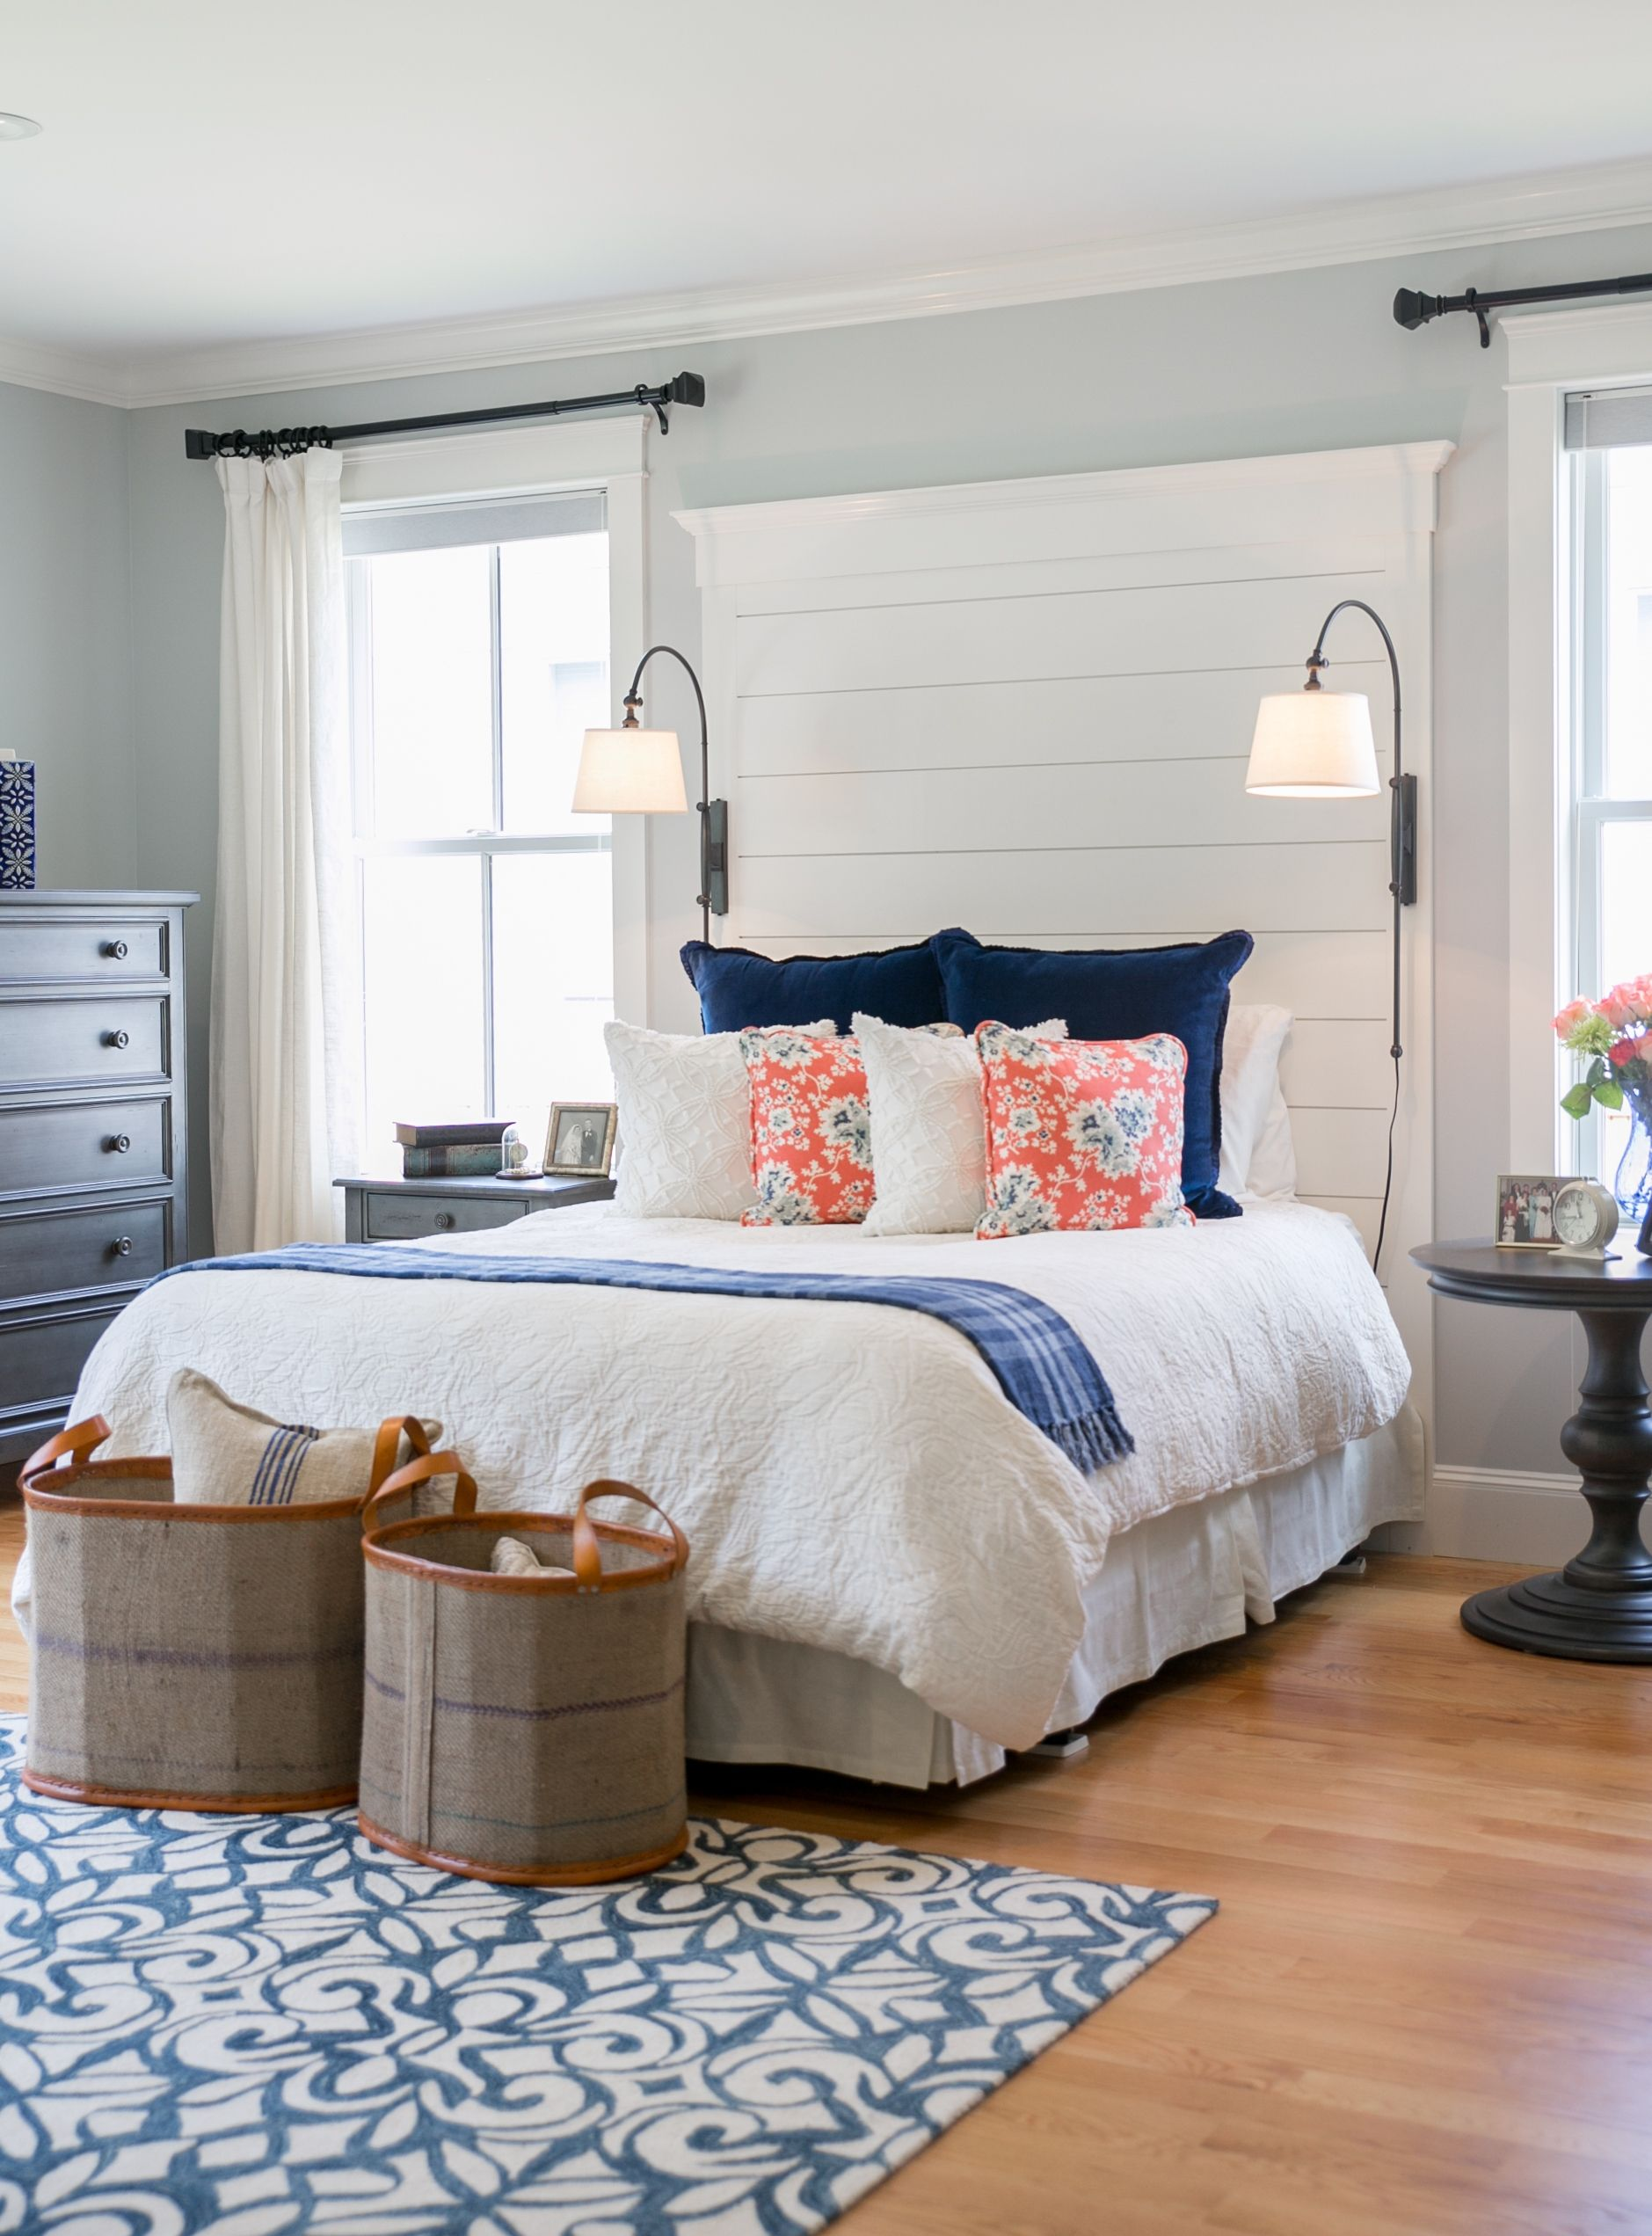 Navy Coral And Cream Master Bedroom With Shiplap Details The within